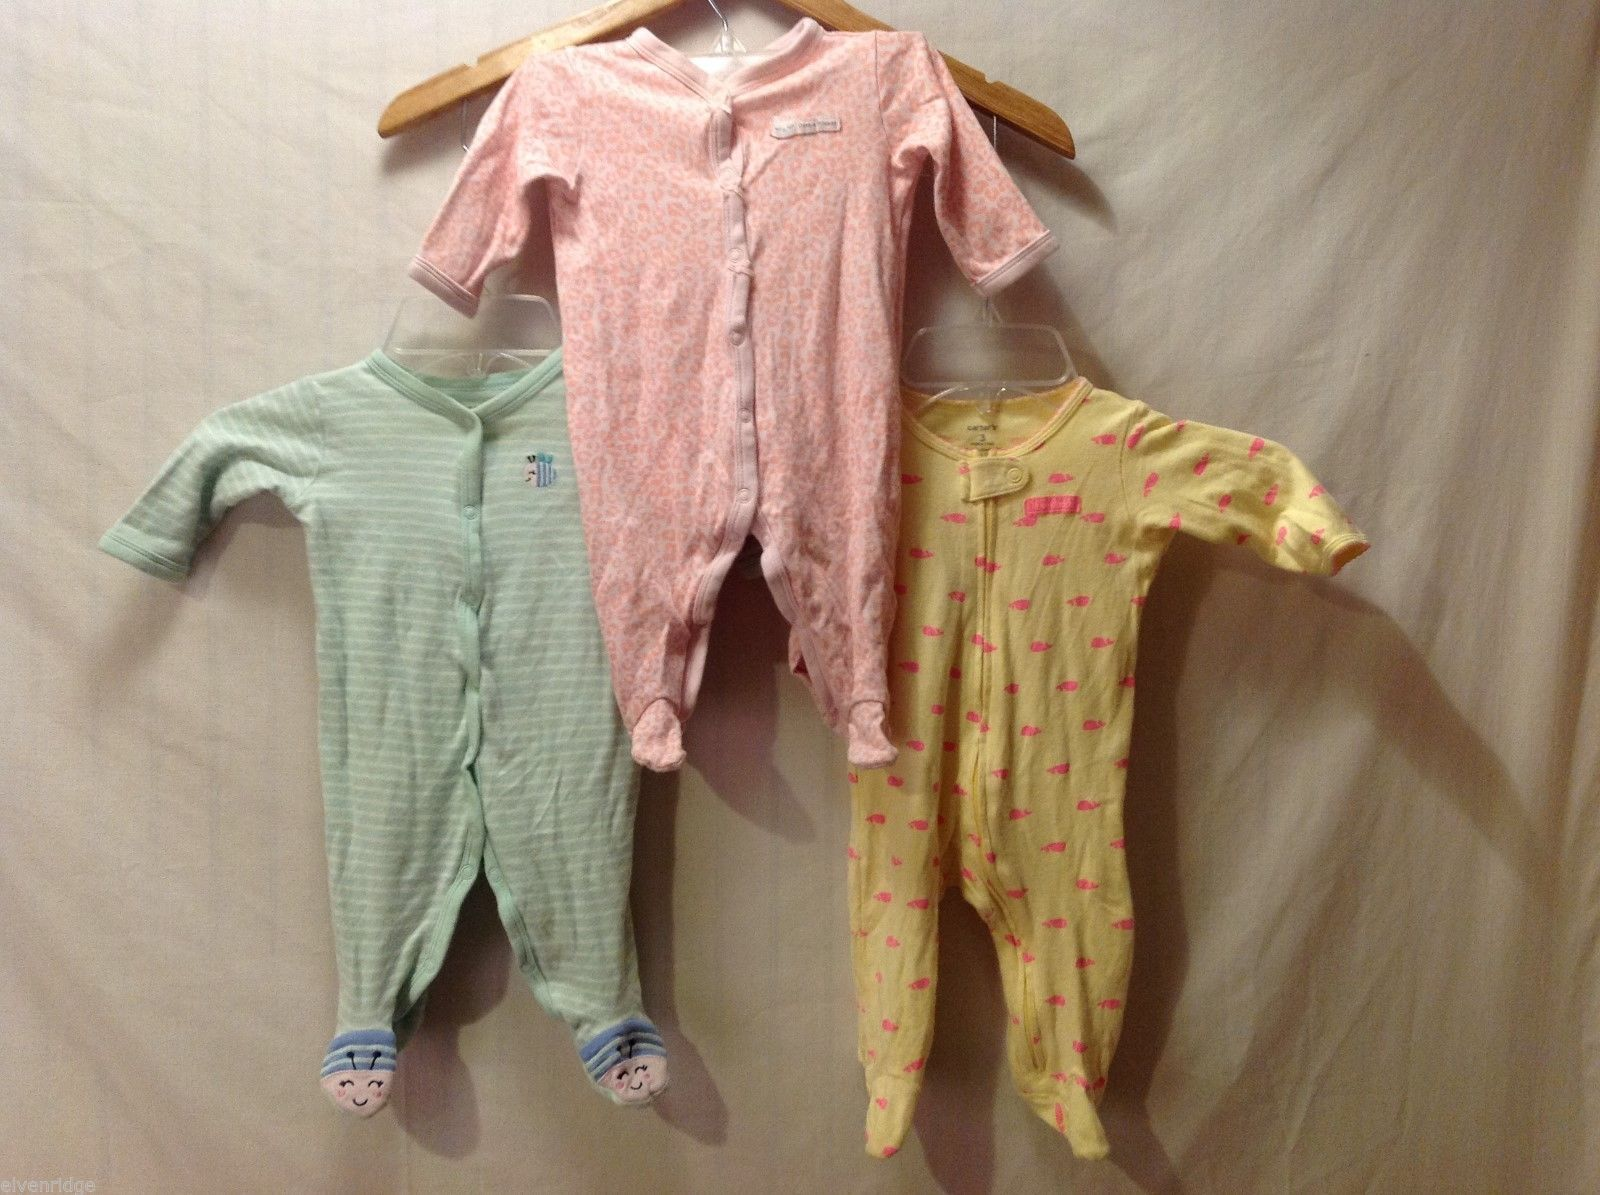 Carter's Lot of 3 baby girl snap up sleep and play outfits, Size 3 months